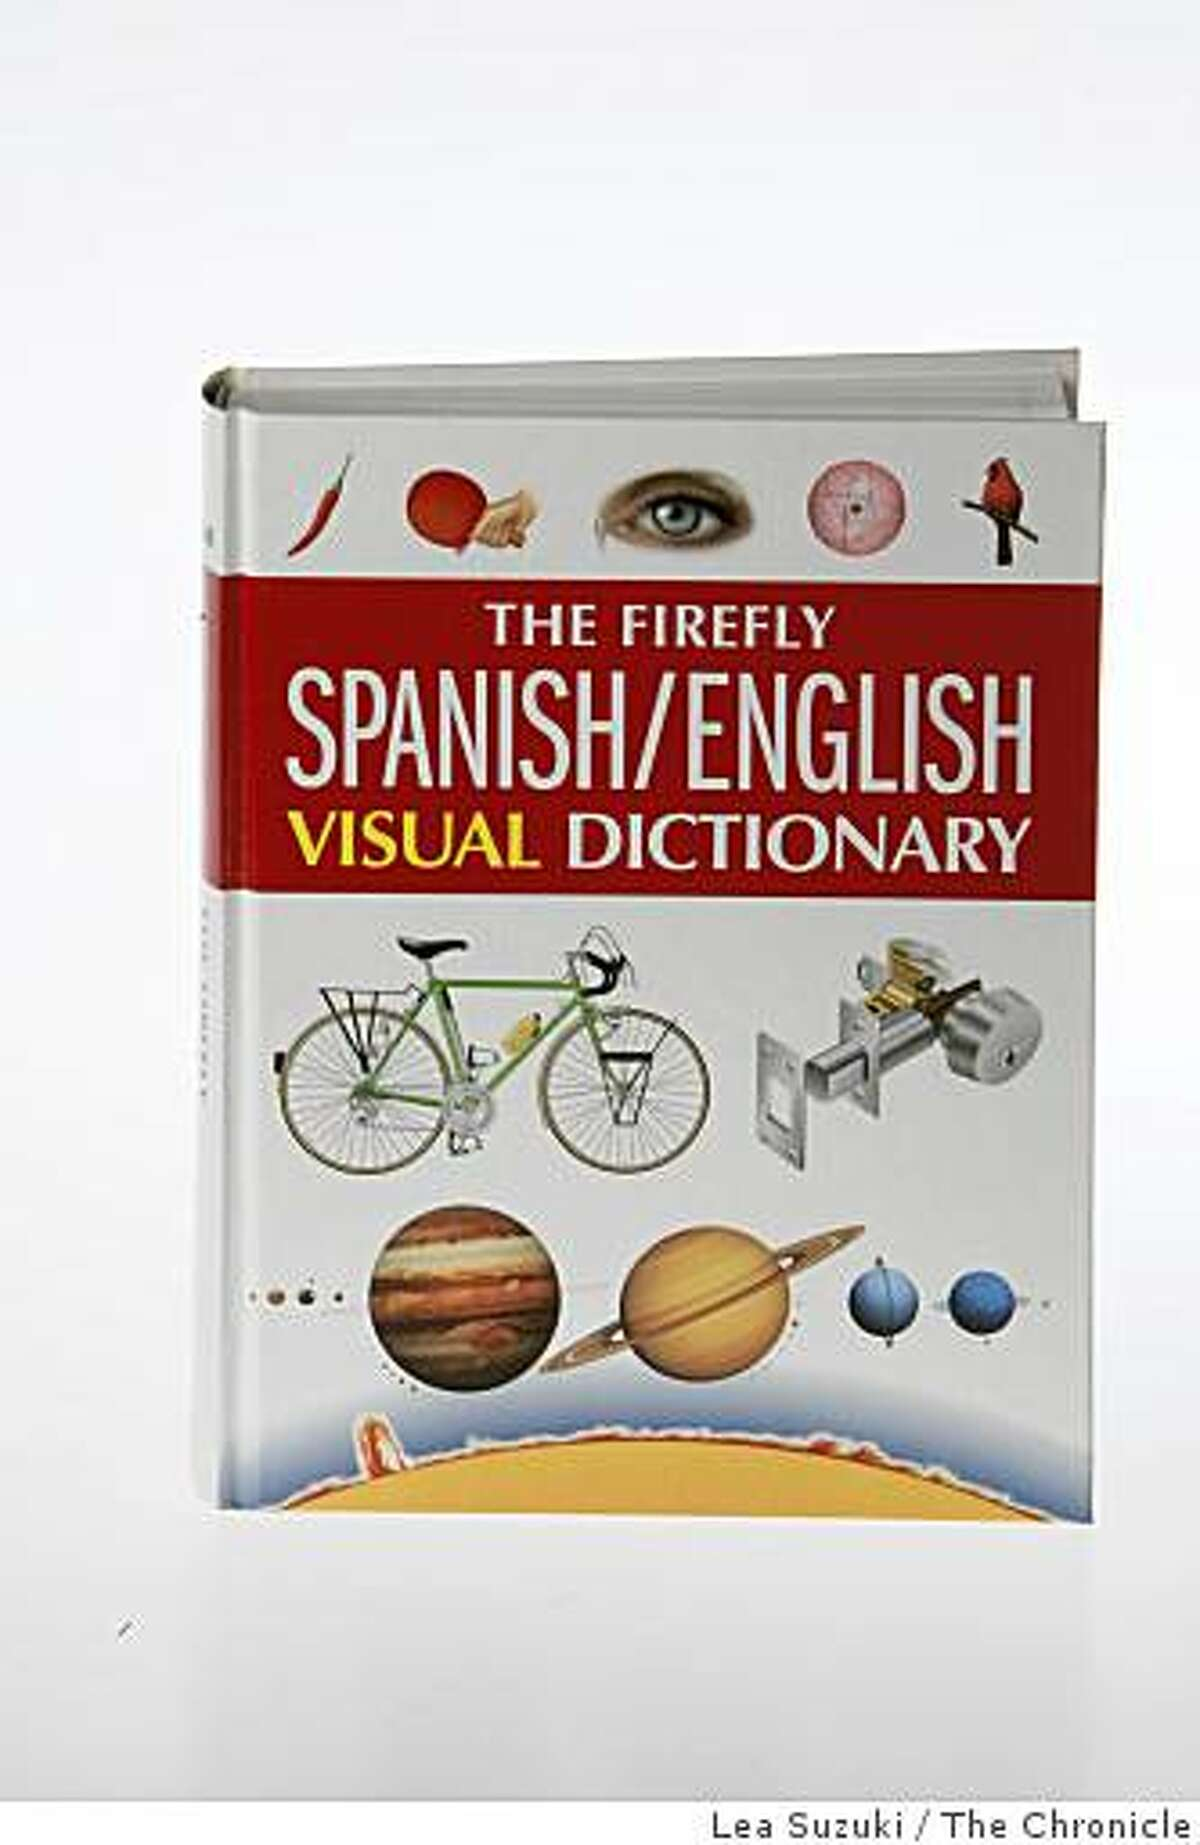 The Firefly Spanish/English Visual Dictionary photographed in San Francisco, Calif. on Tuesday, February 3, 2009.